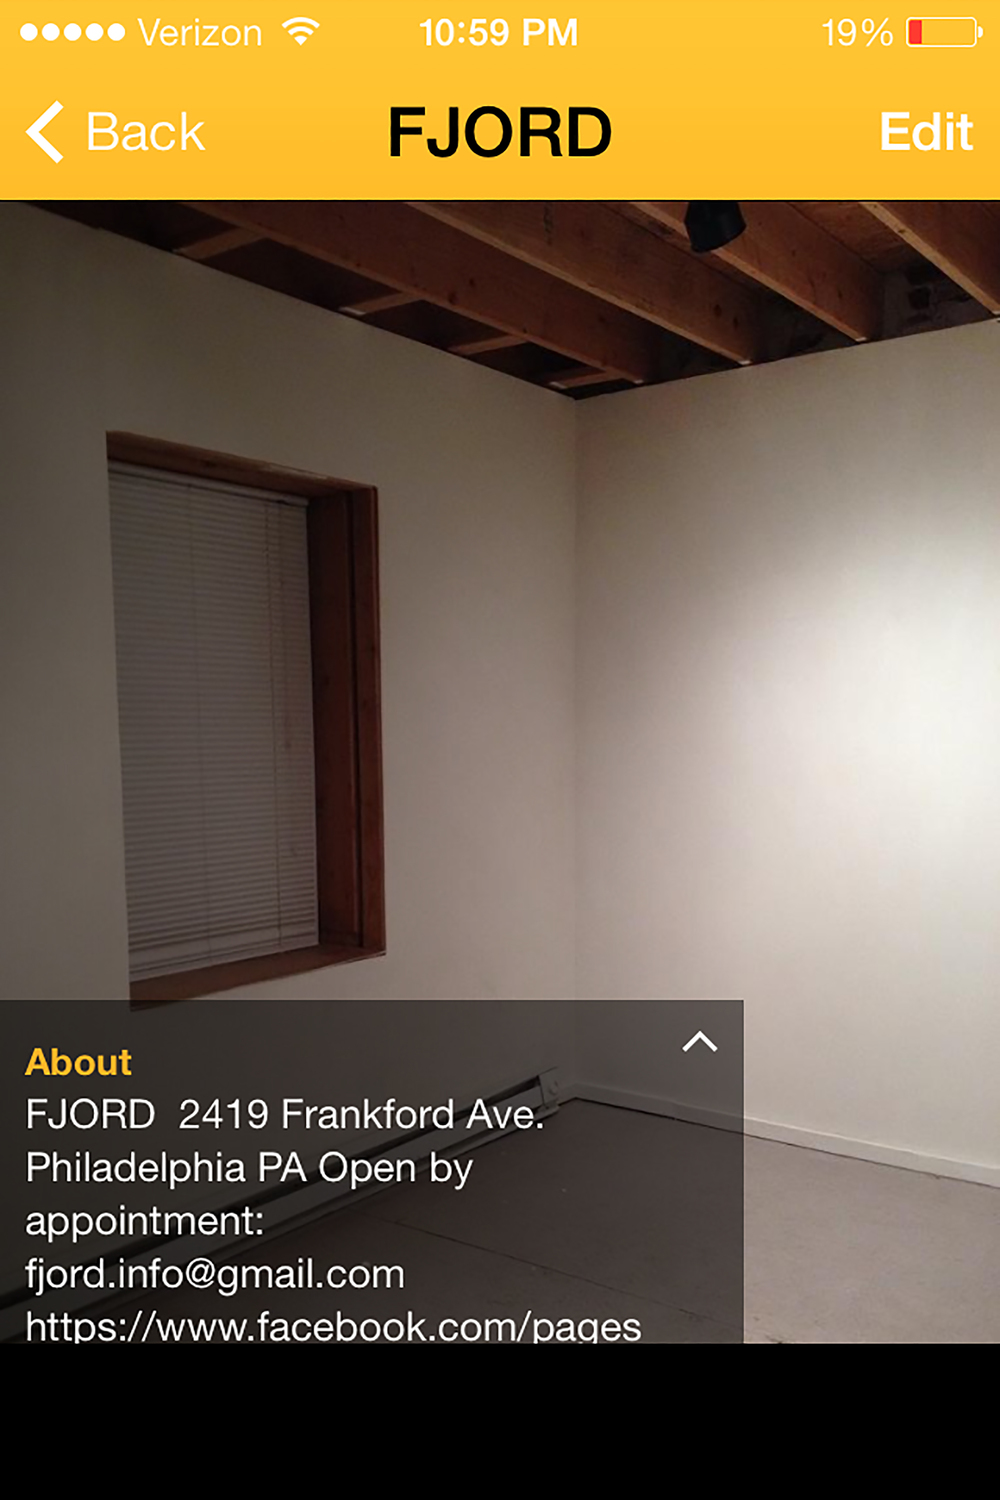 miss sean , 2014 profiles set up and maintained on Scruff and Grindr apps by  Fjord for the duration of the exhibition